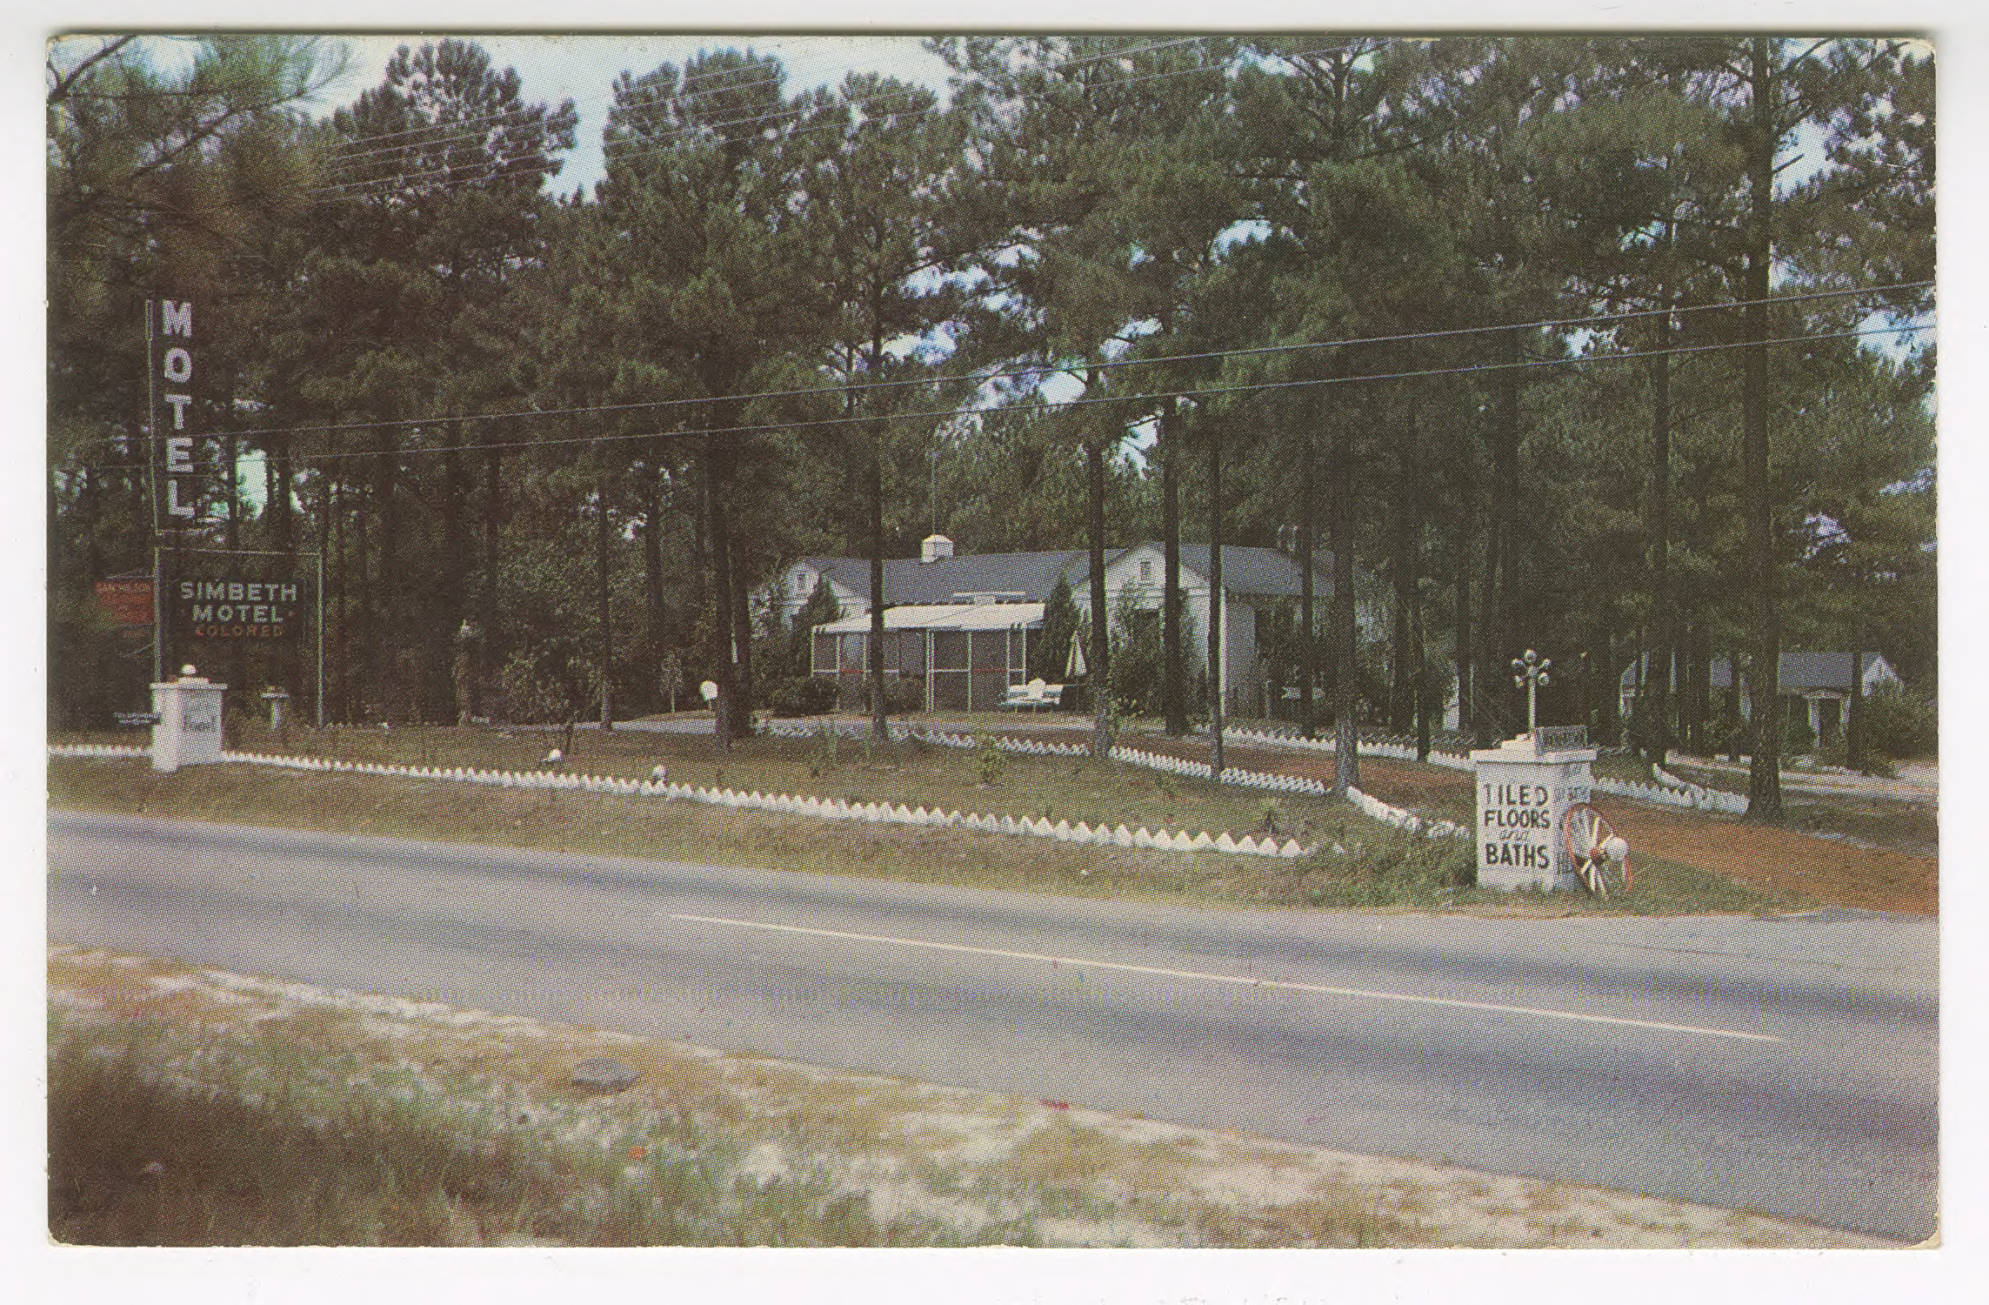 Motel Simbeth postcard